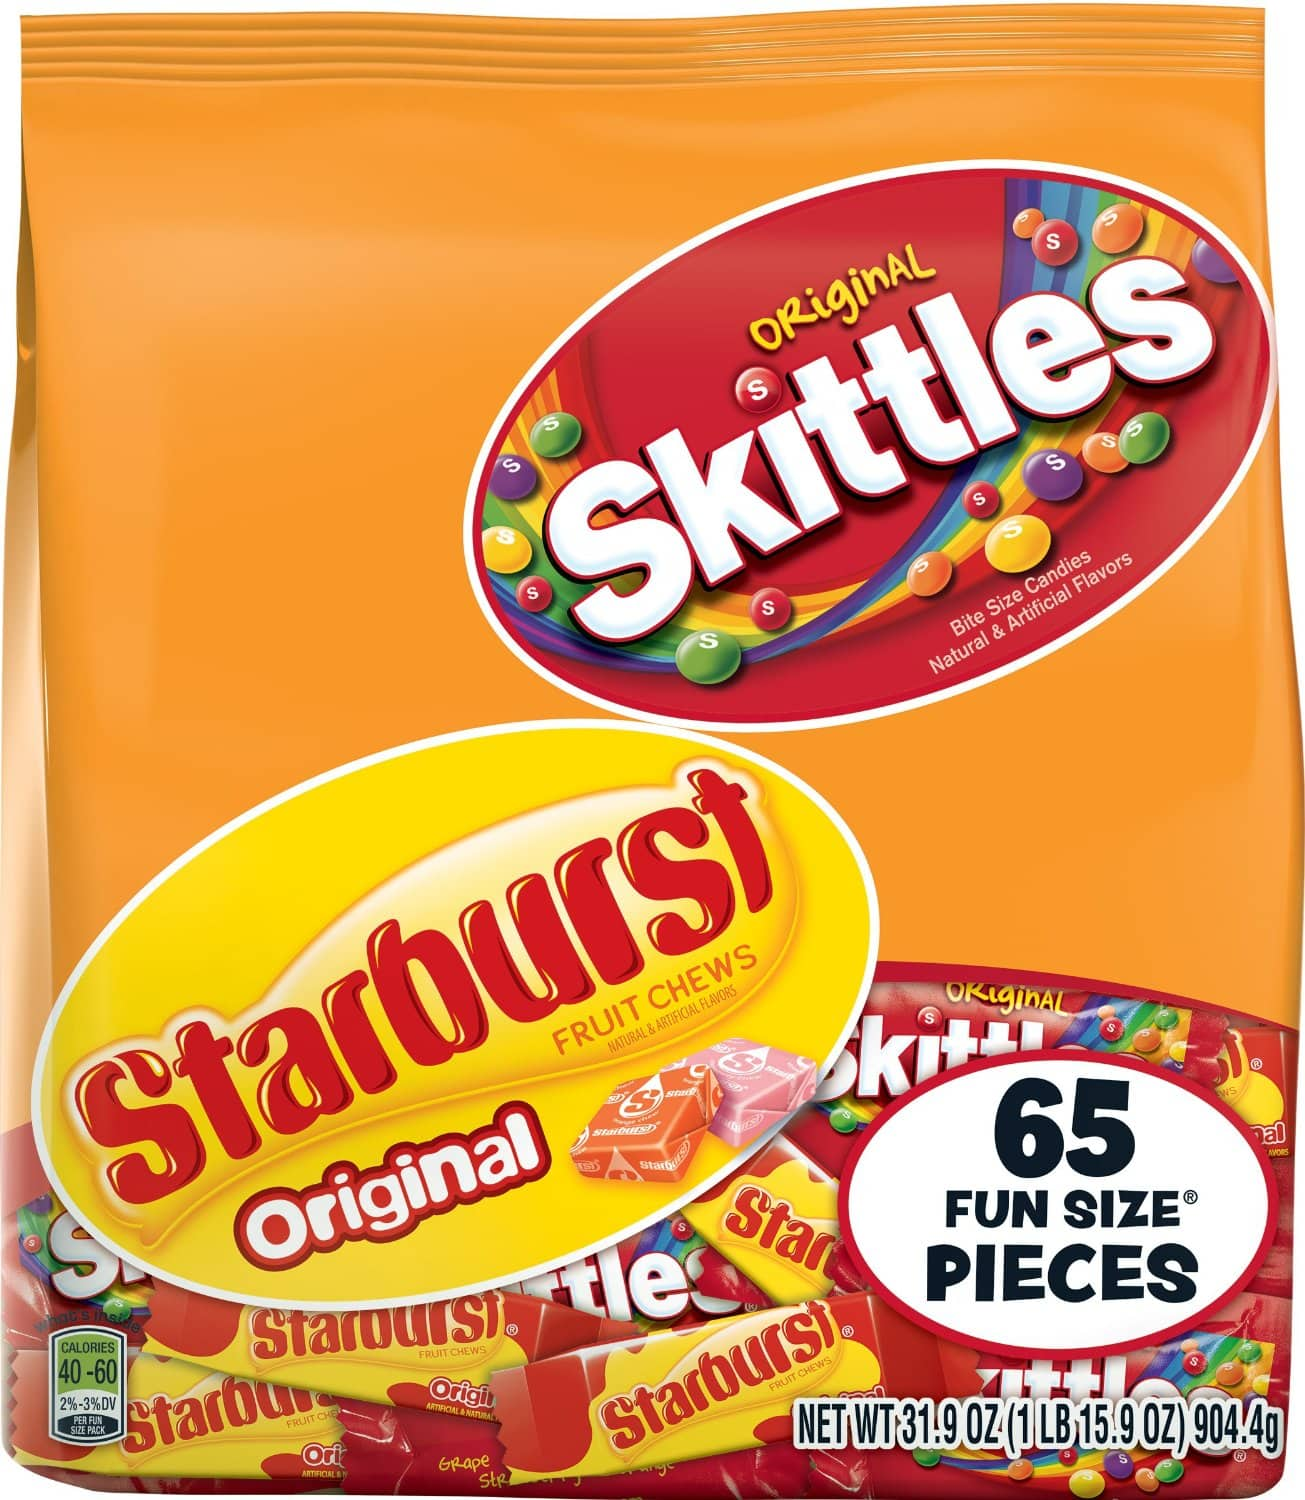 65 Fun Size Pieces Skittles and Starburst Original Halloween Candy Bag Amazon $6.58